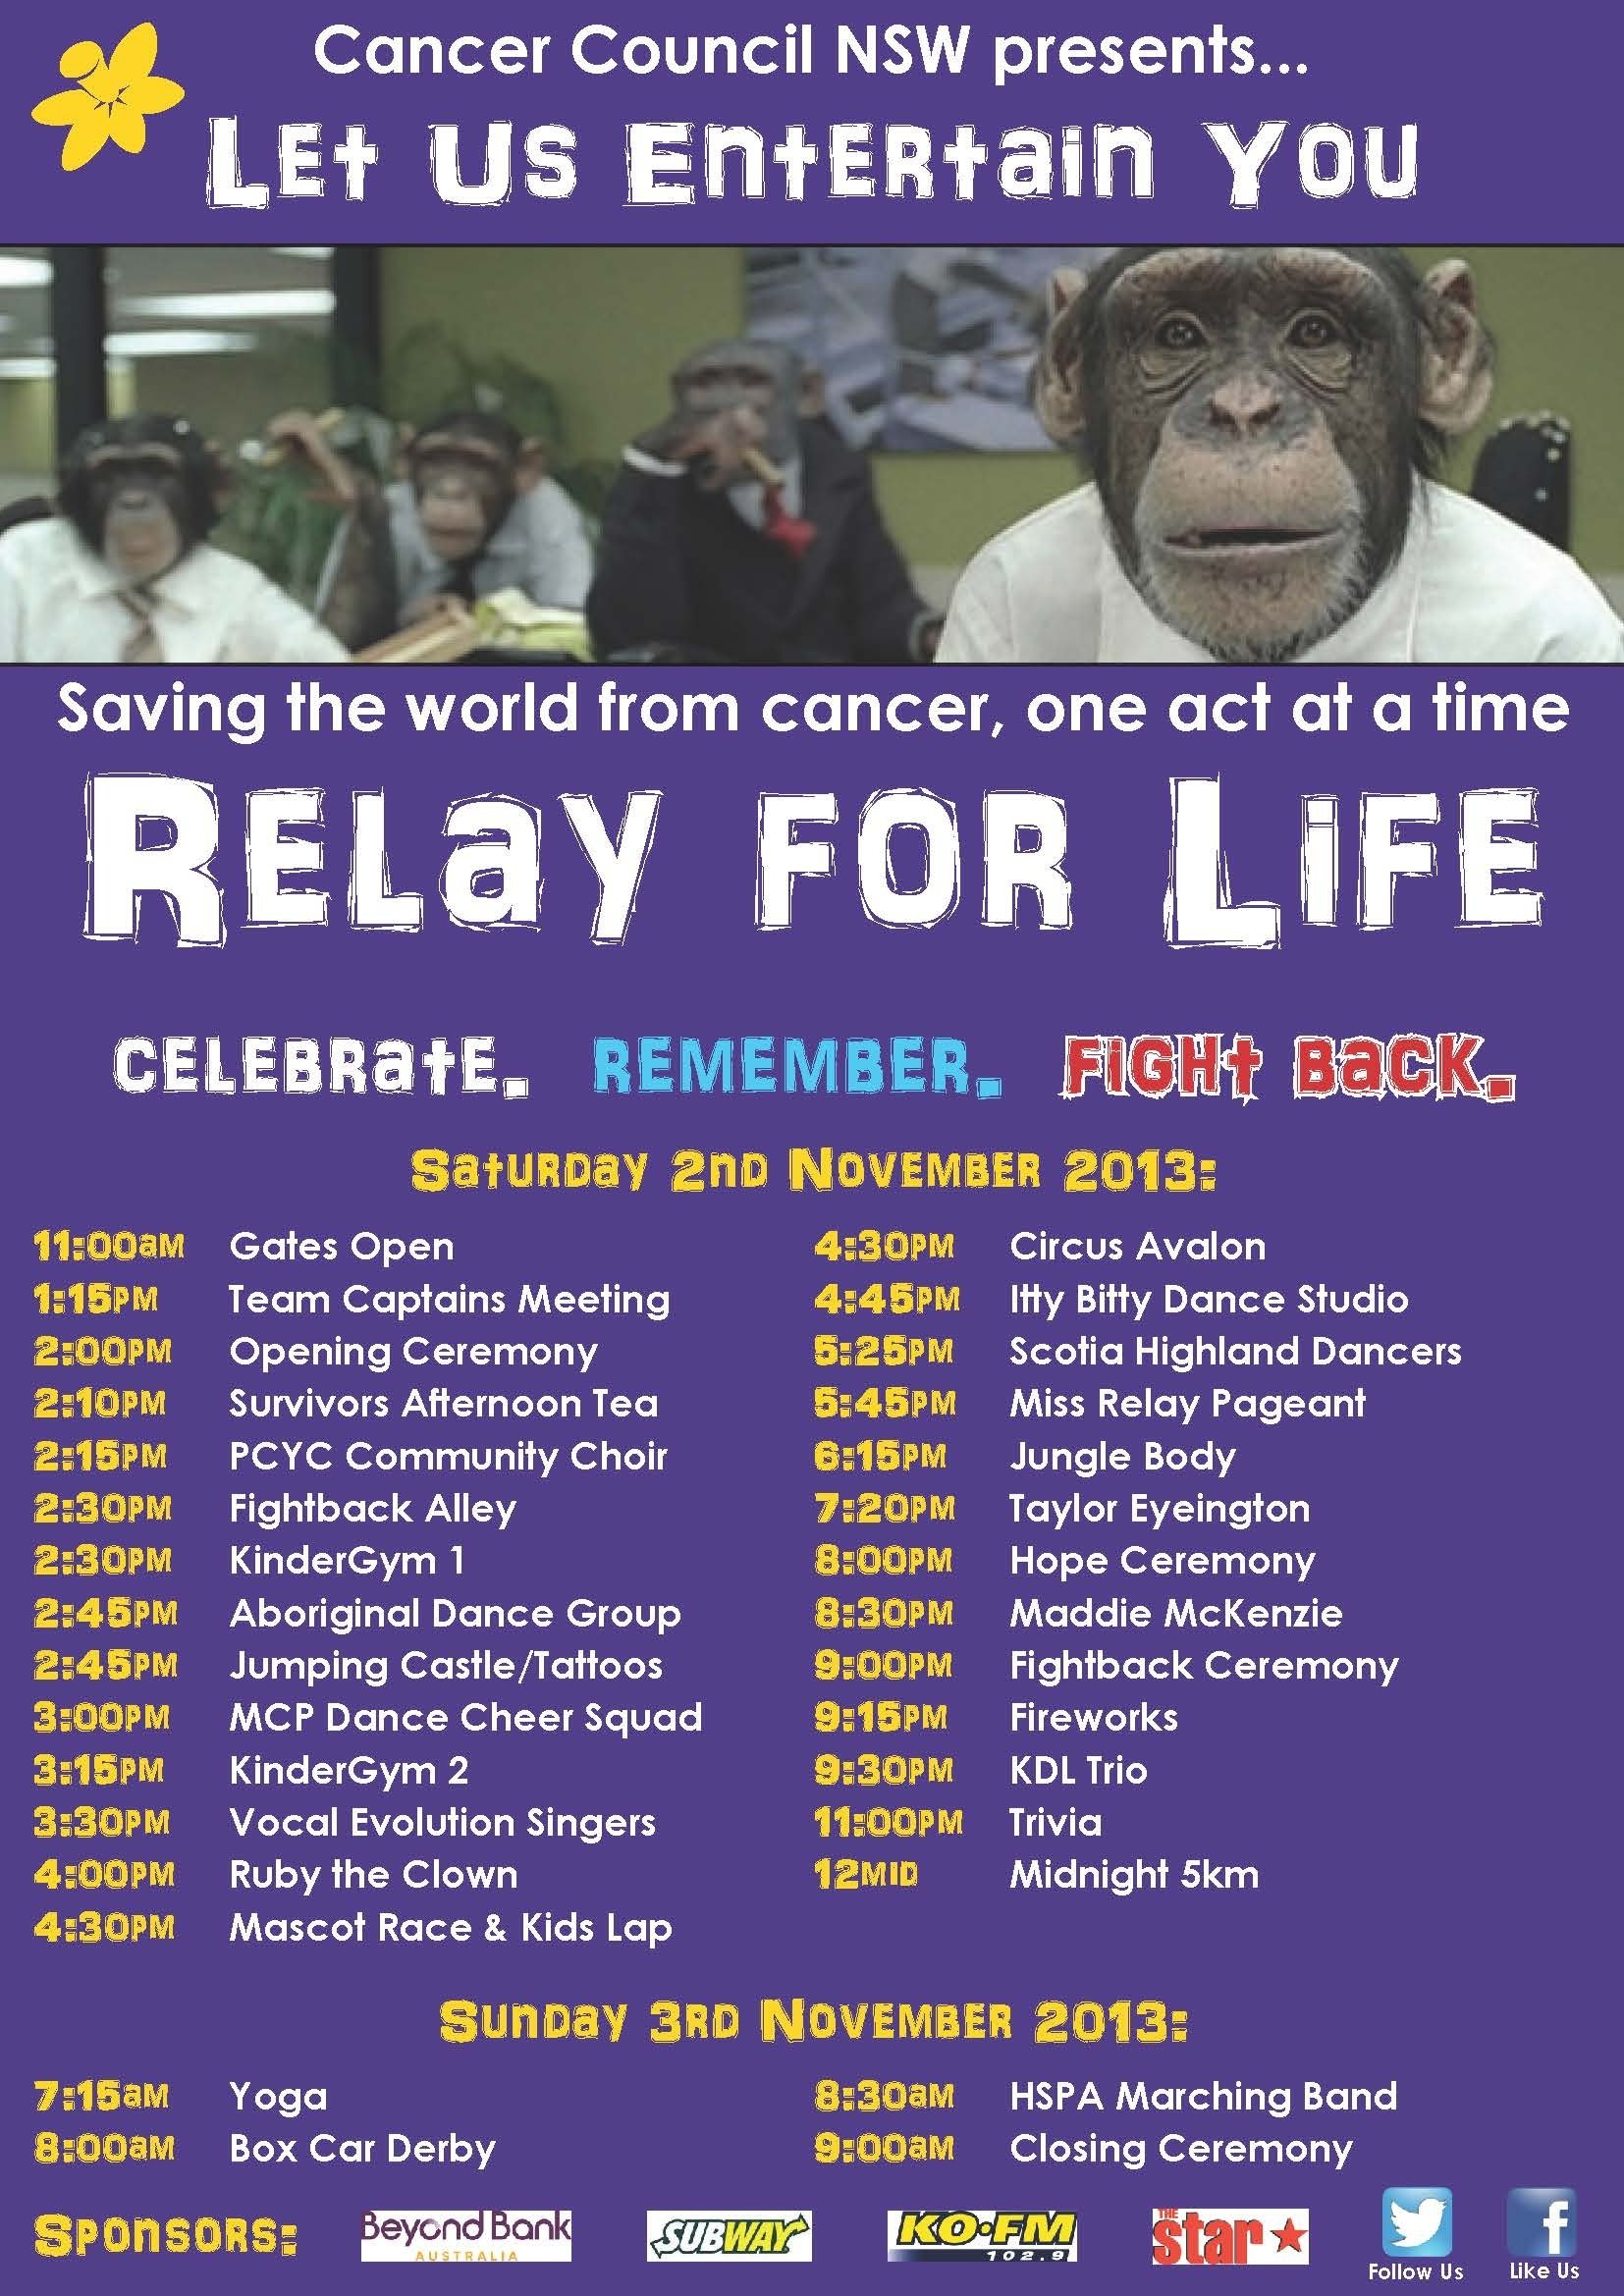 10 Spectacular Relay For Life Lap Ideas newcastle lake macquarie relay for life 2013 let us entertain you 2020